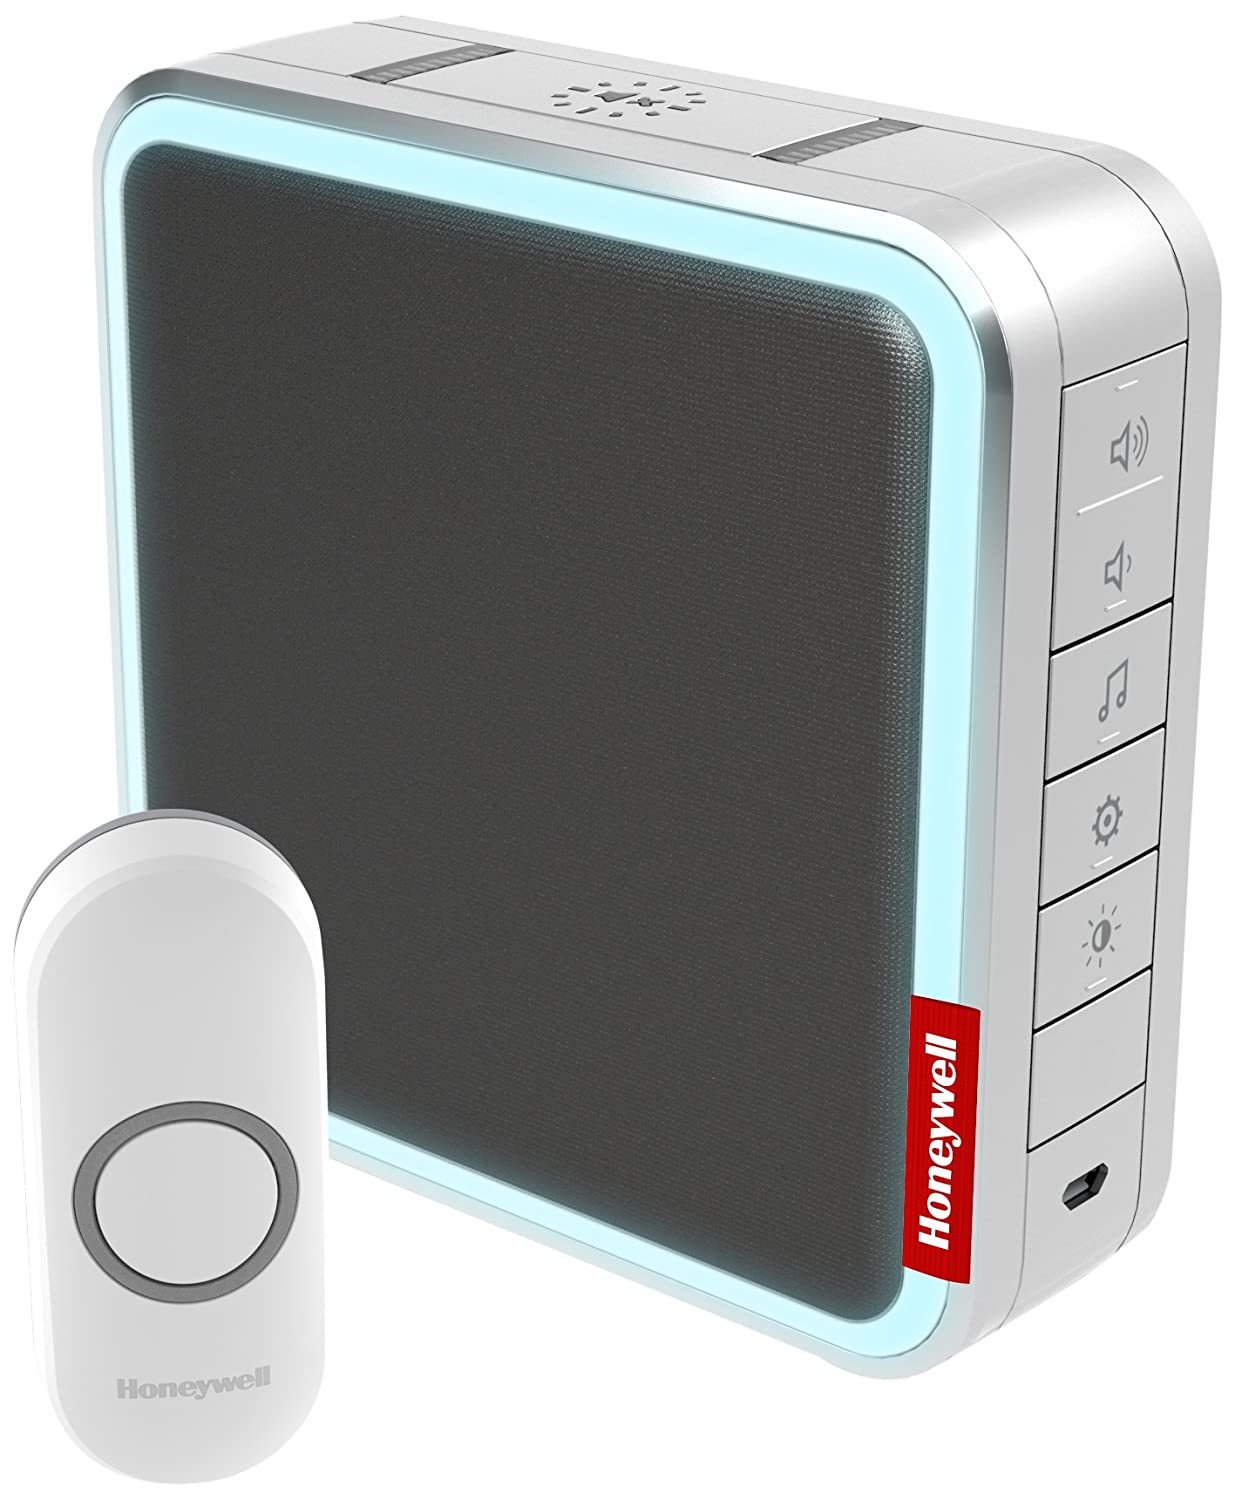 Honeywell DC917NG 9 Series Wireless 200 Meter MP3 Doorbell with Halo Light - Grey